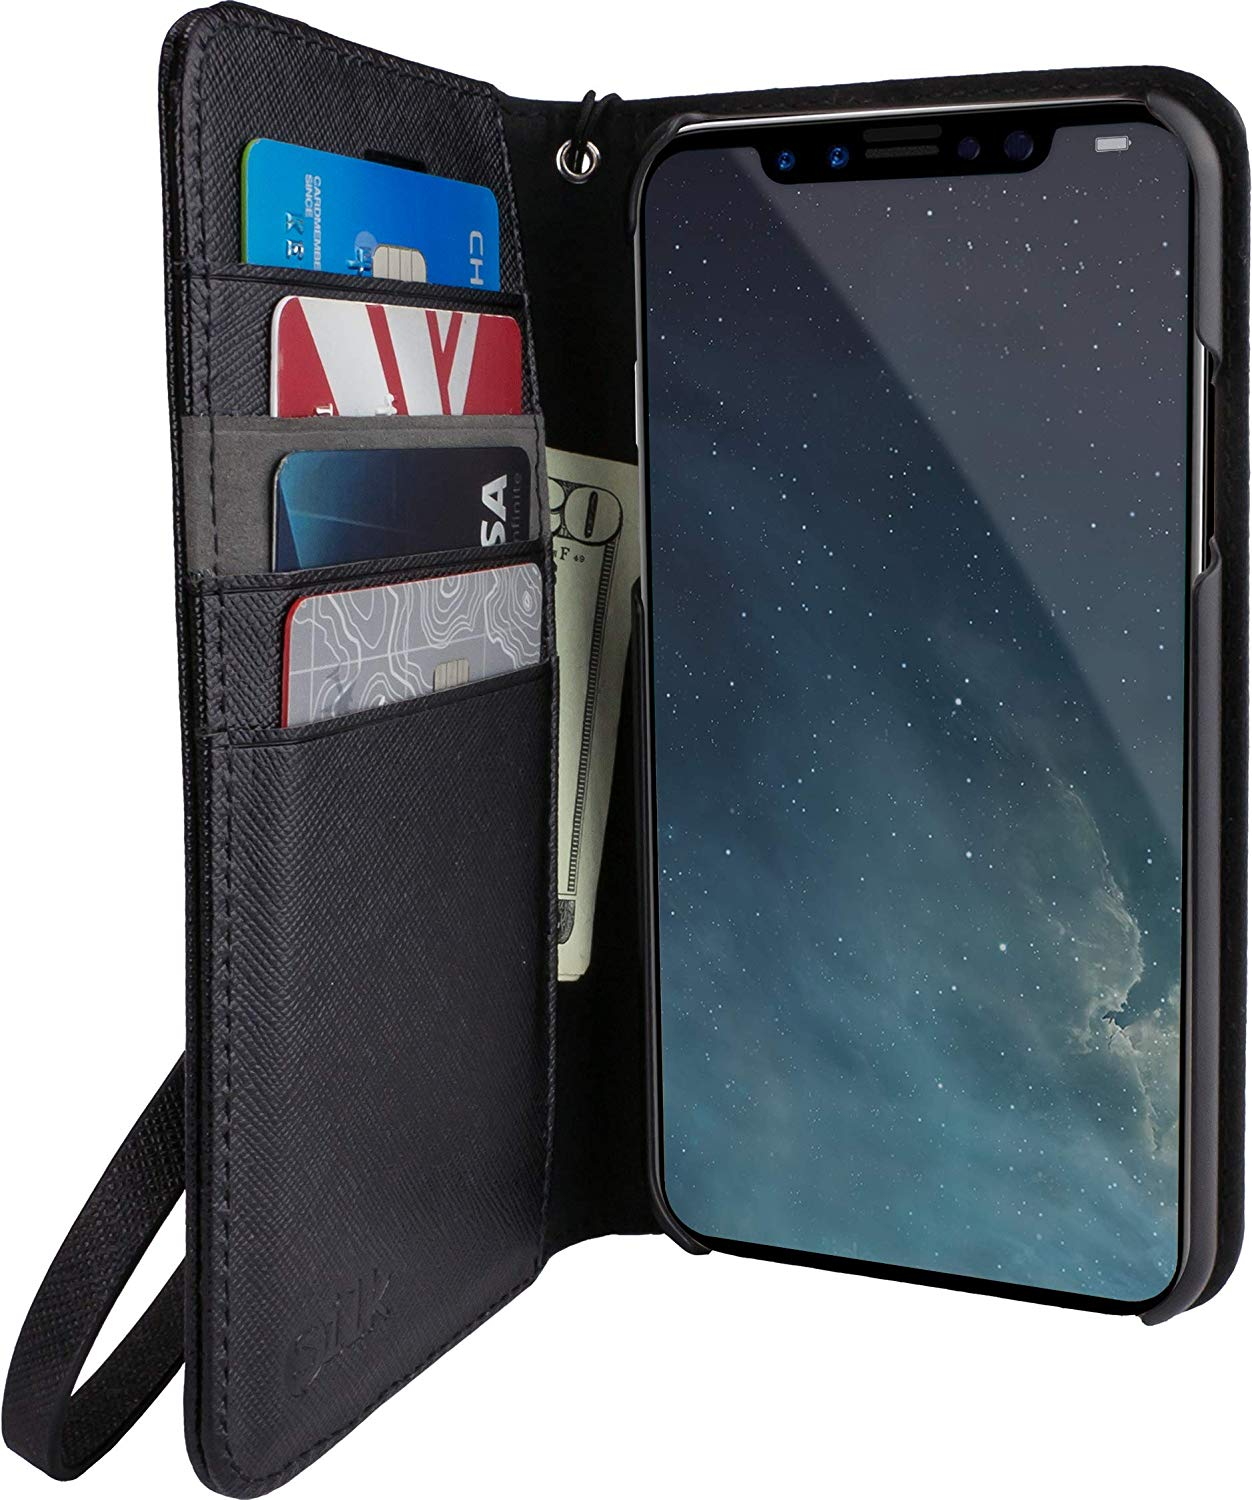 silk portfolio black best wallet cases for iPhone XR